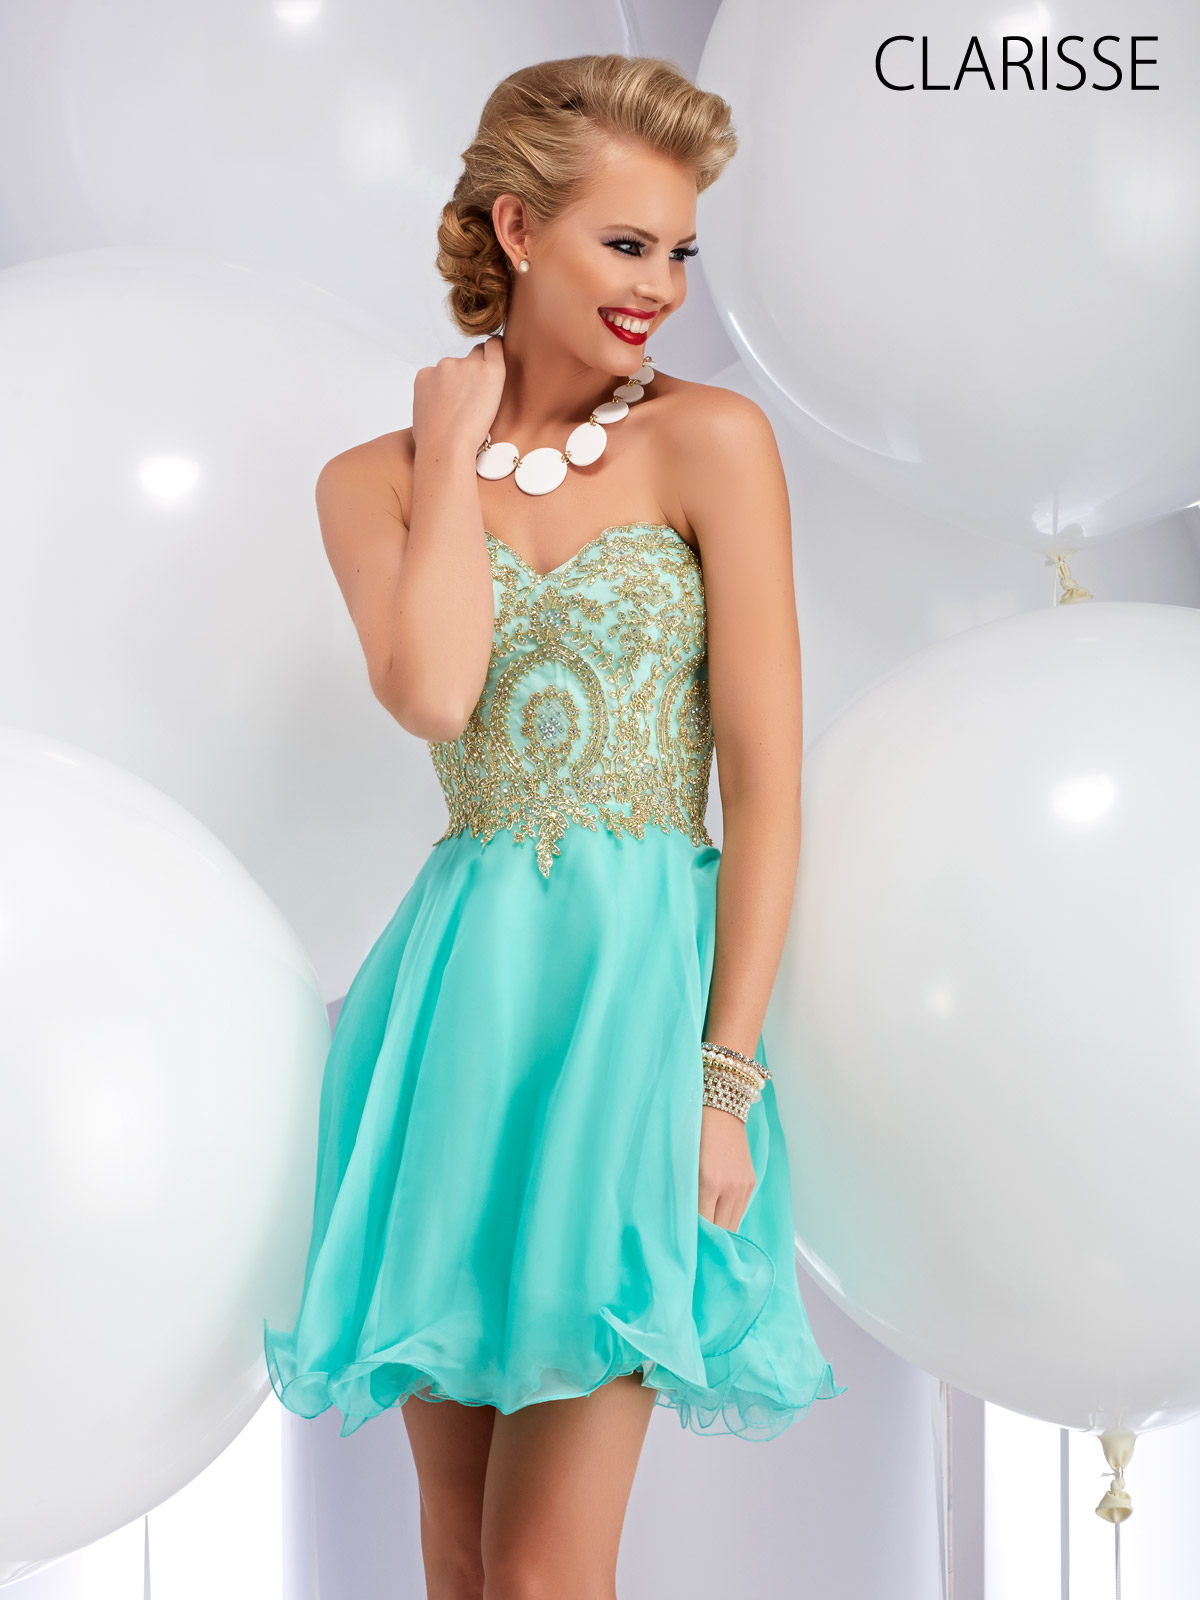 Clarisse Short, Mint, Fun and Flirty Beaded 2016 Prom Dress Style ...